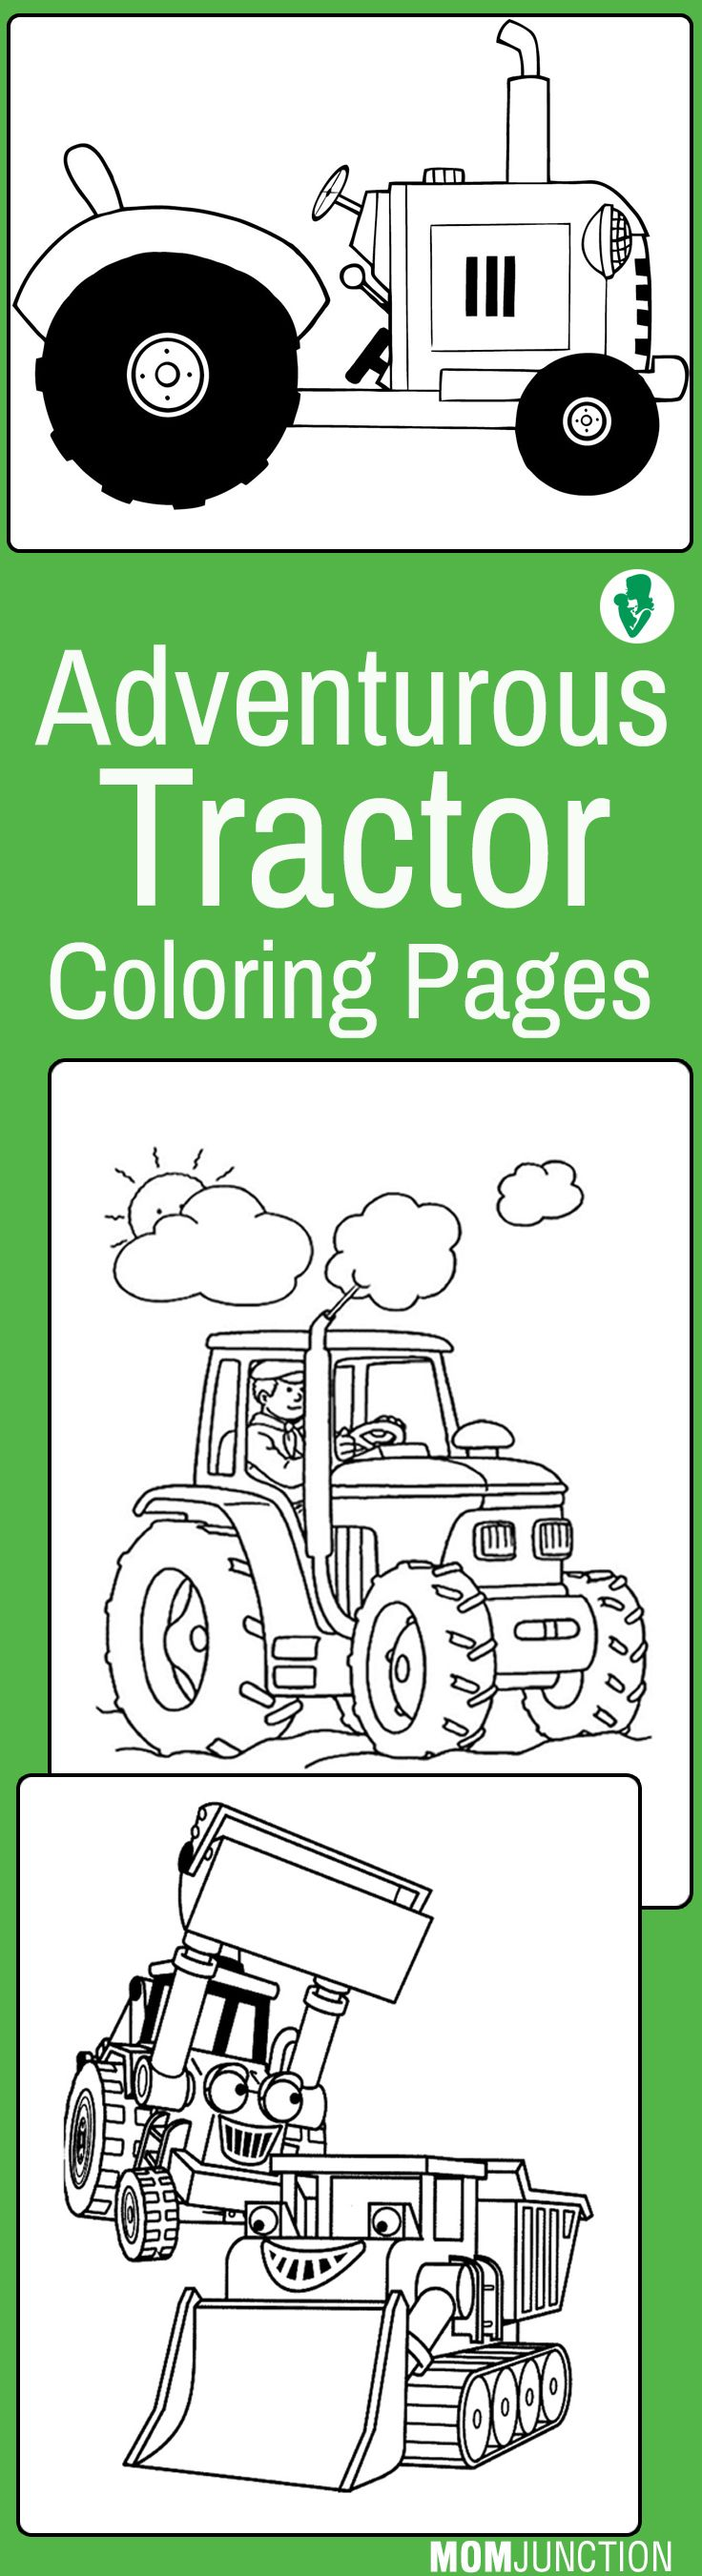 Top 25 Free Printable Tractor Coloring Pages Online | Tractor, Free ...